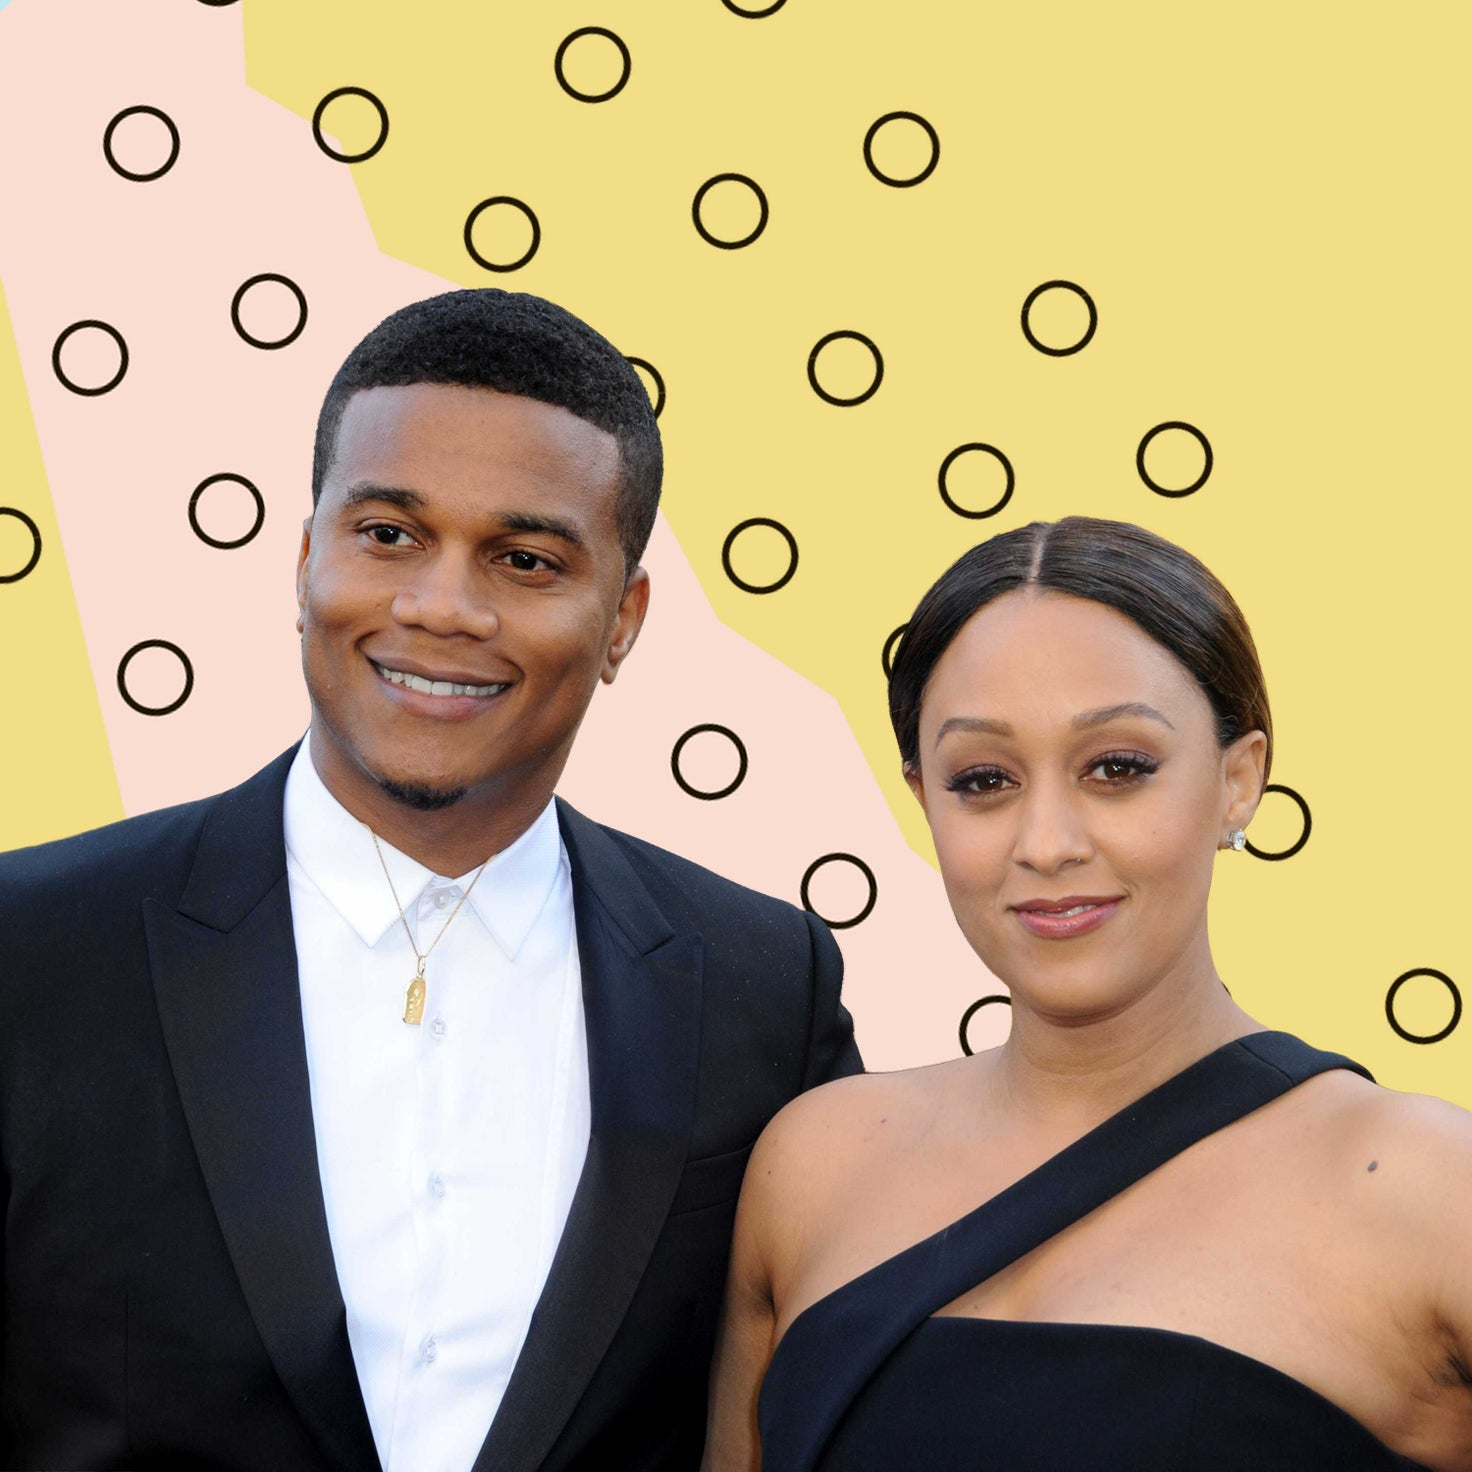 You'll Love Tia Mowry-Hardrict's Reason For Why Being With Her Husband Has Made HerBetter